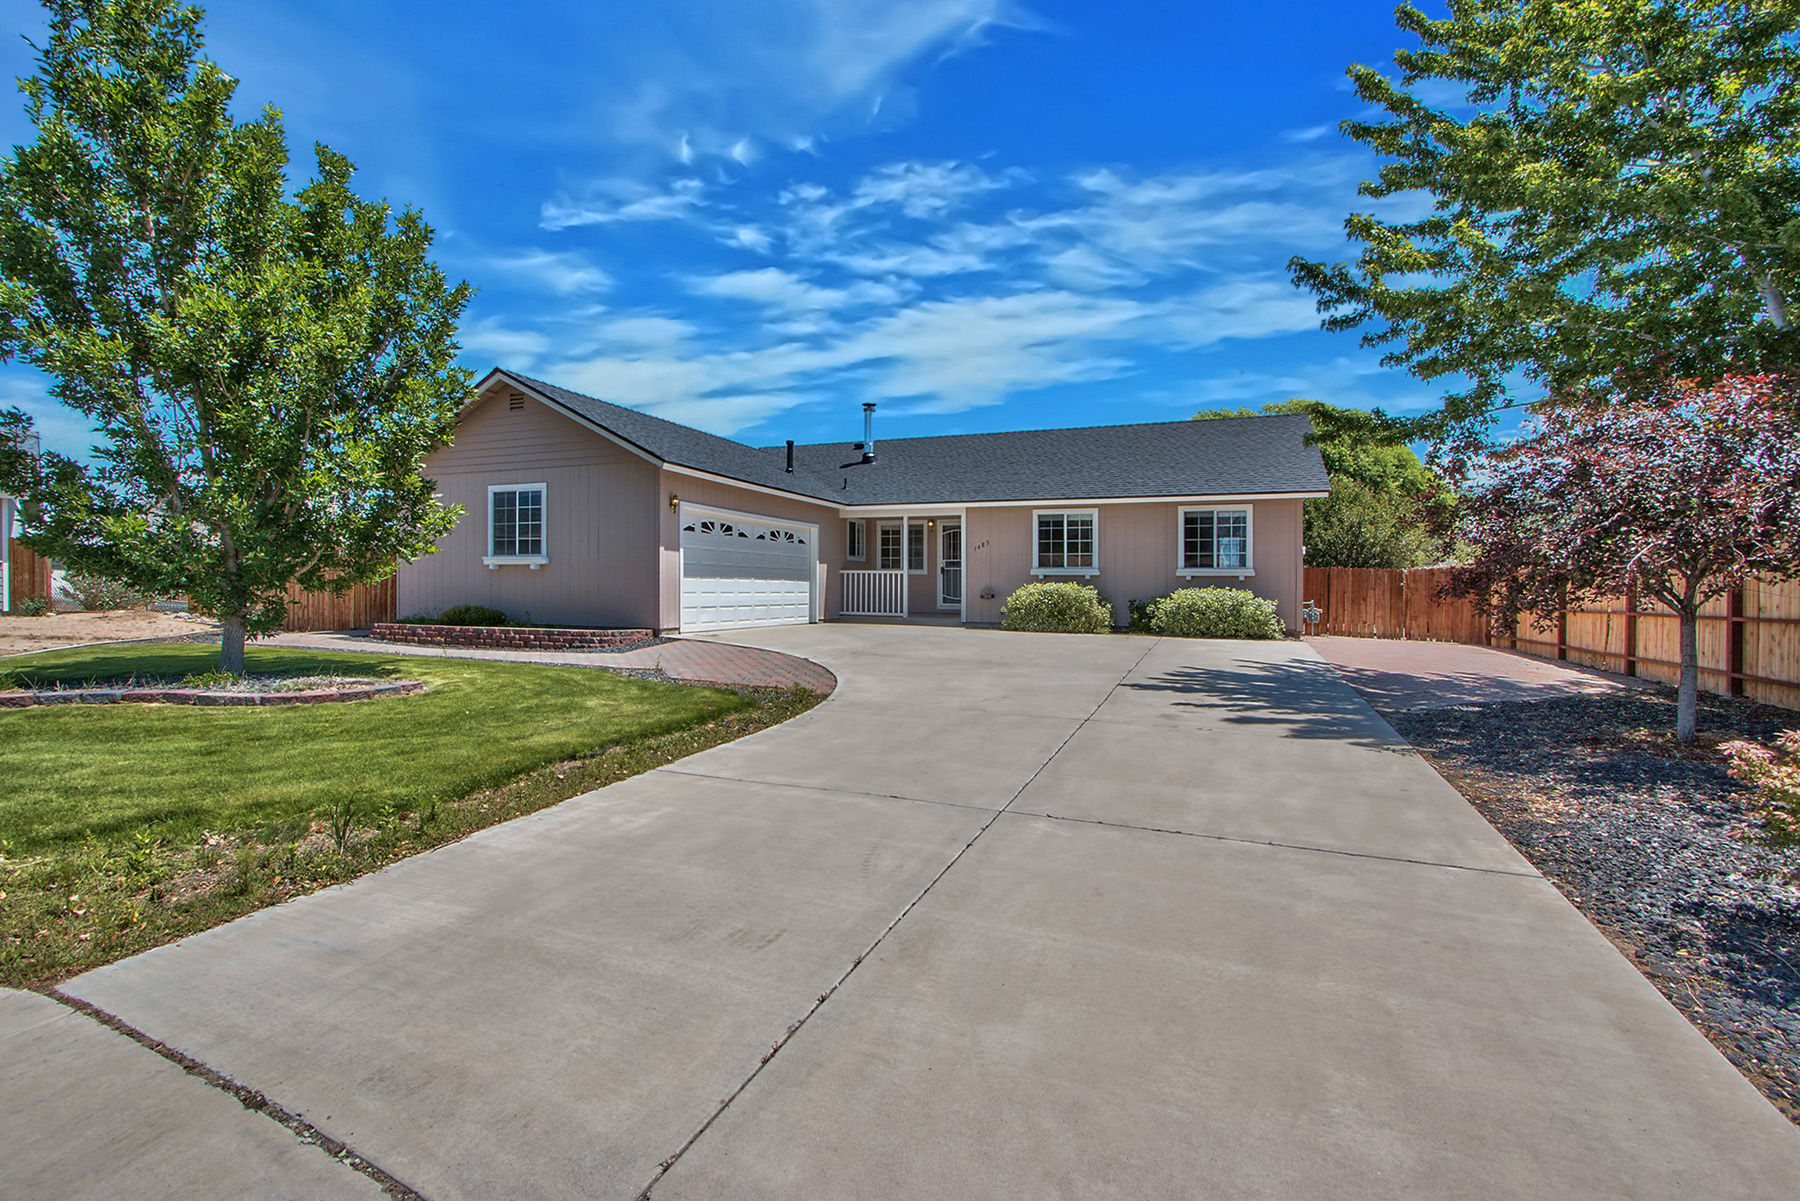 Single Family Home for Sale at 1483 Irene Court Gardnerville, Nevada 89460 United States